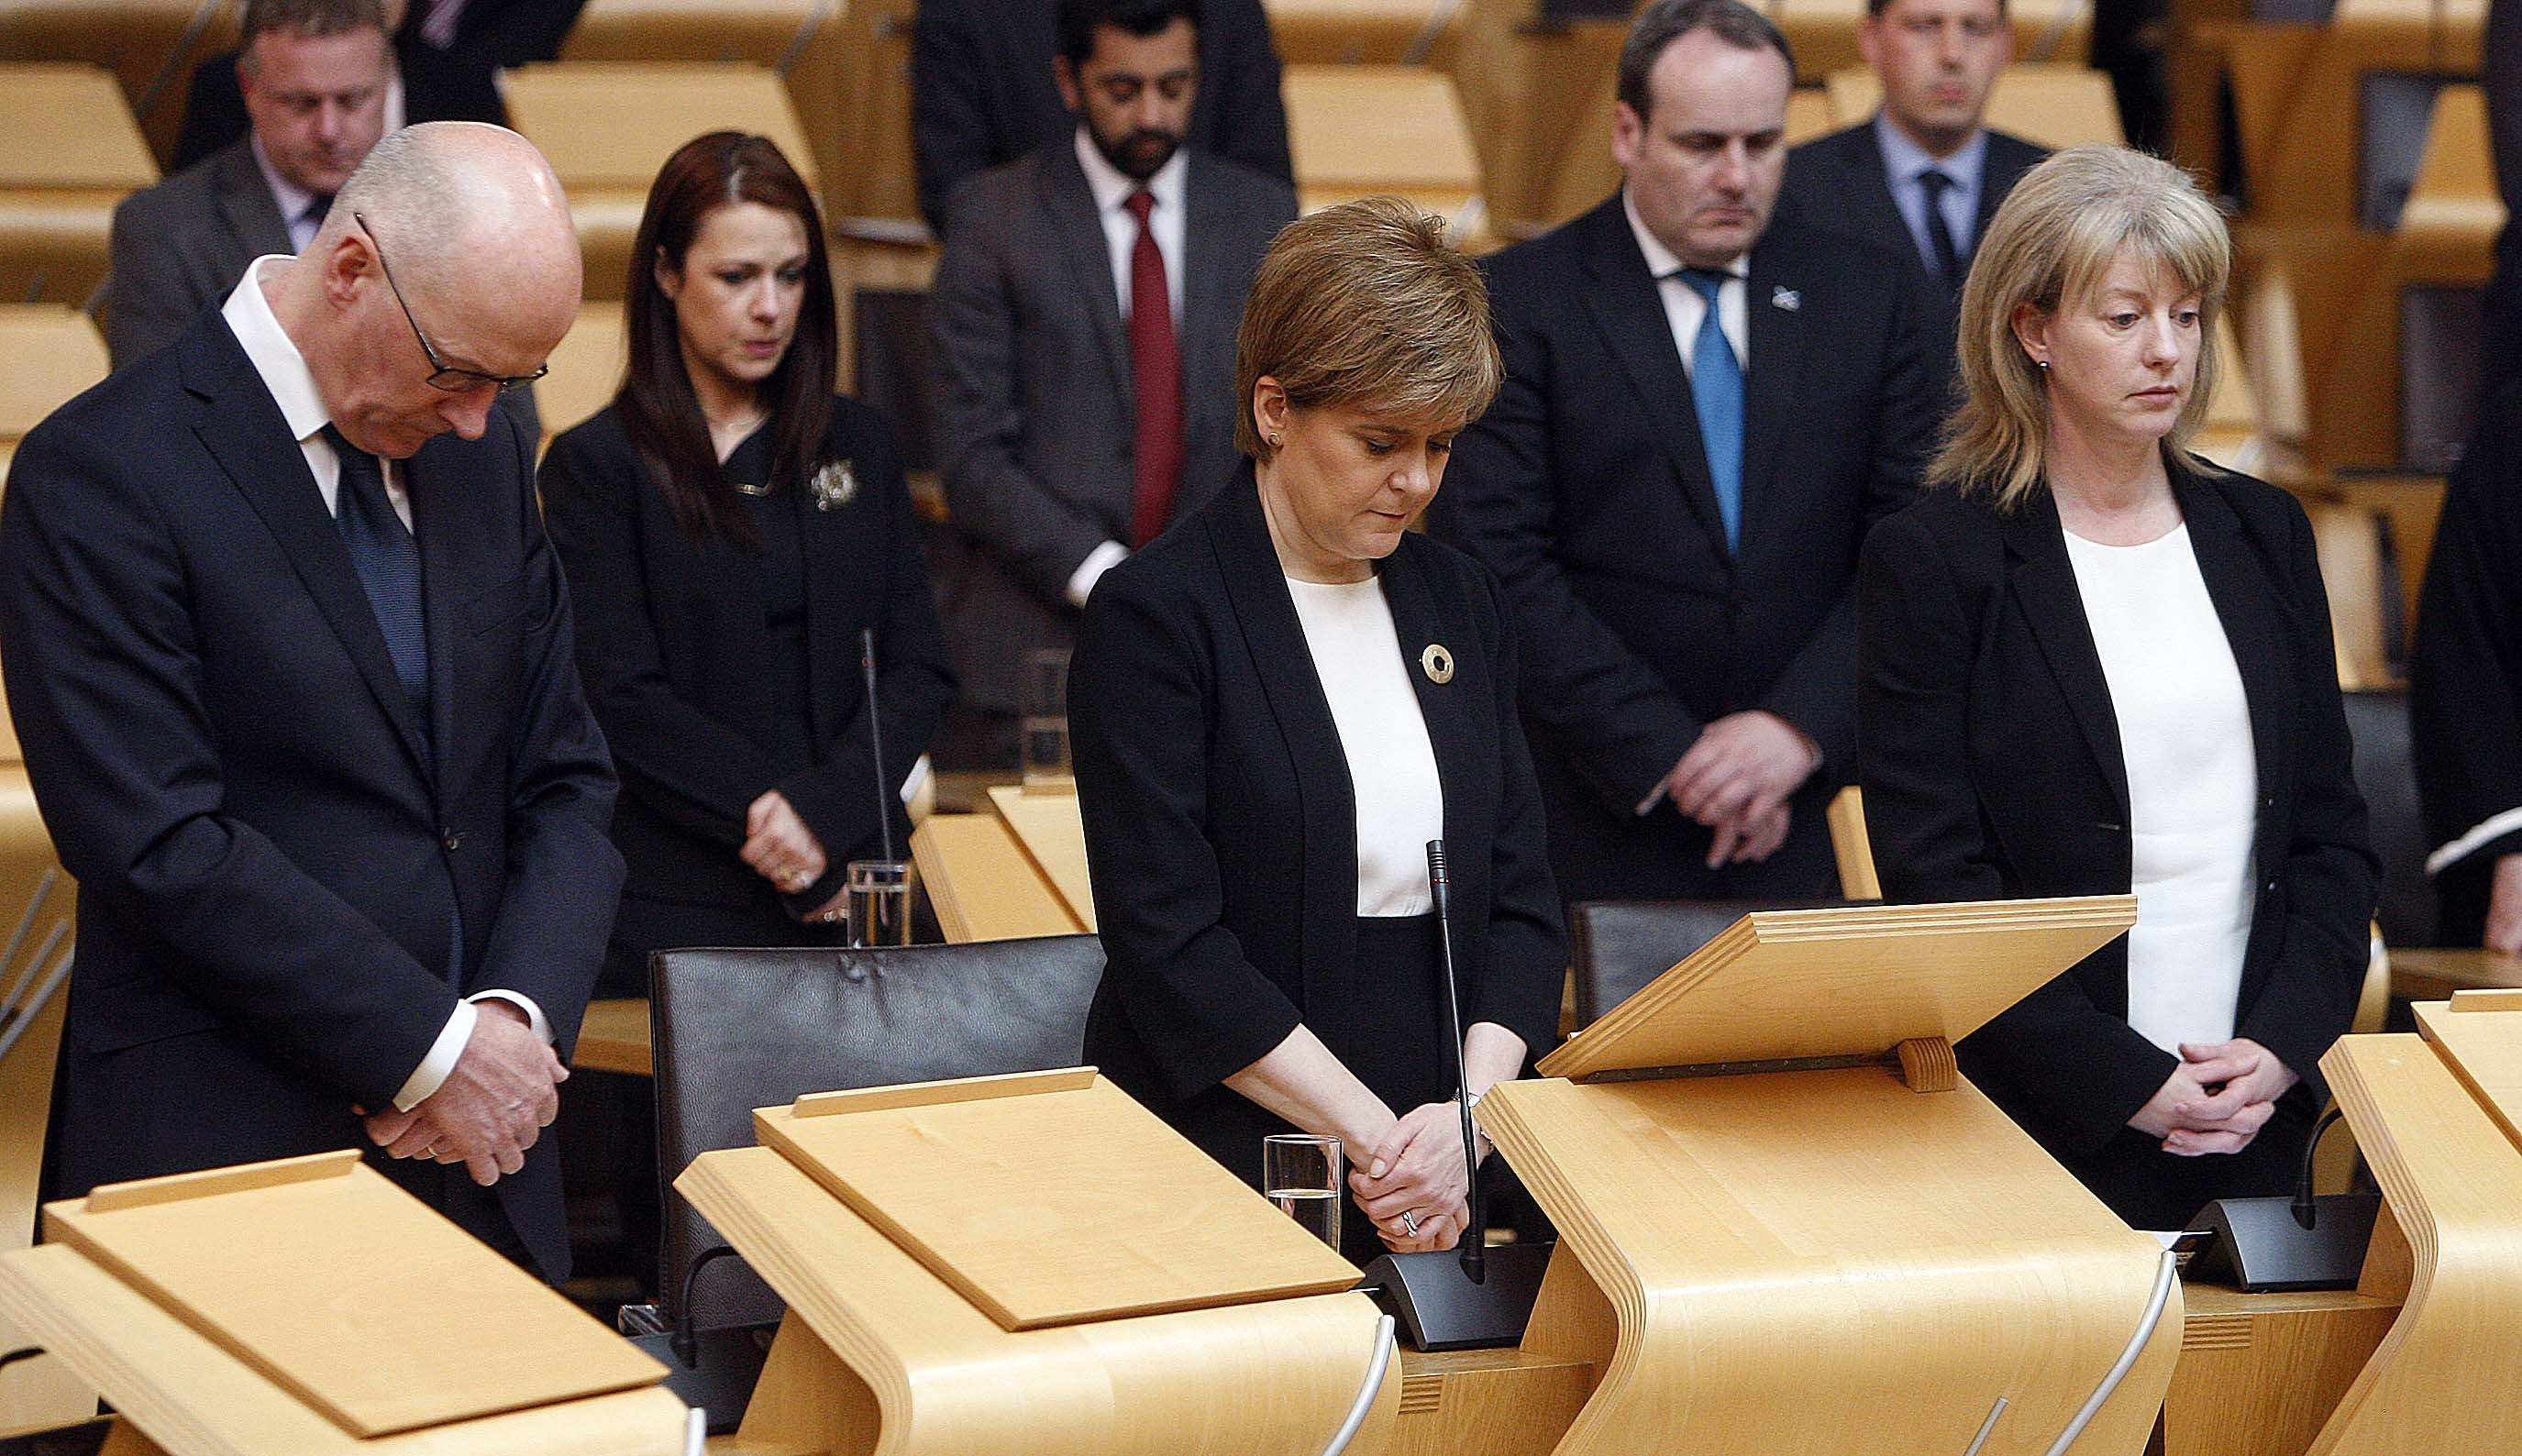 John Swinney, Nicola Sturgeon and Shona Robison during the minute's silence.